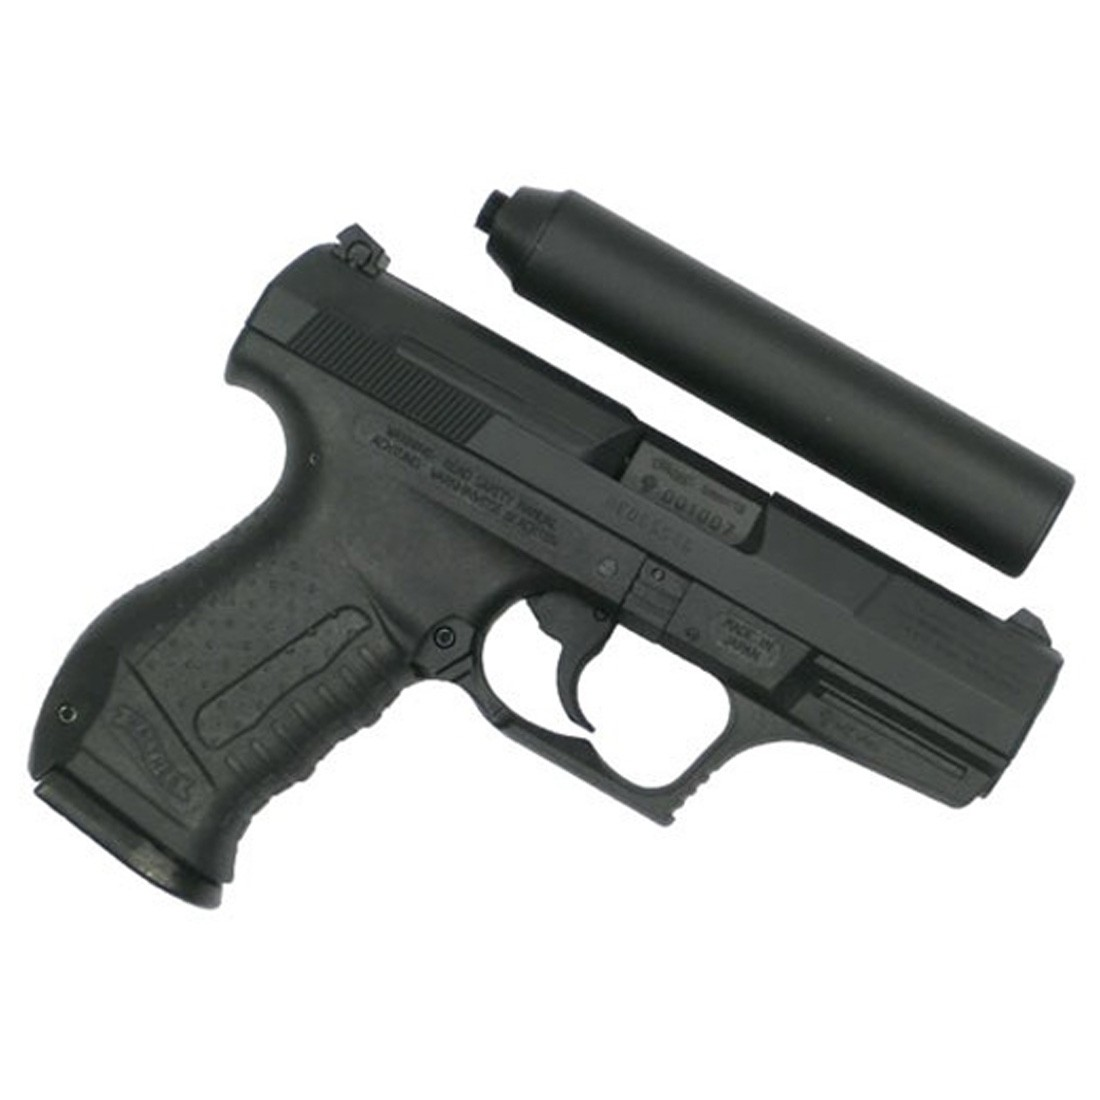 Maruzen Walther P99 Fixed Slide Gas Airsoft Pistol with Silencer